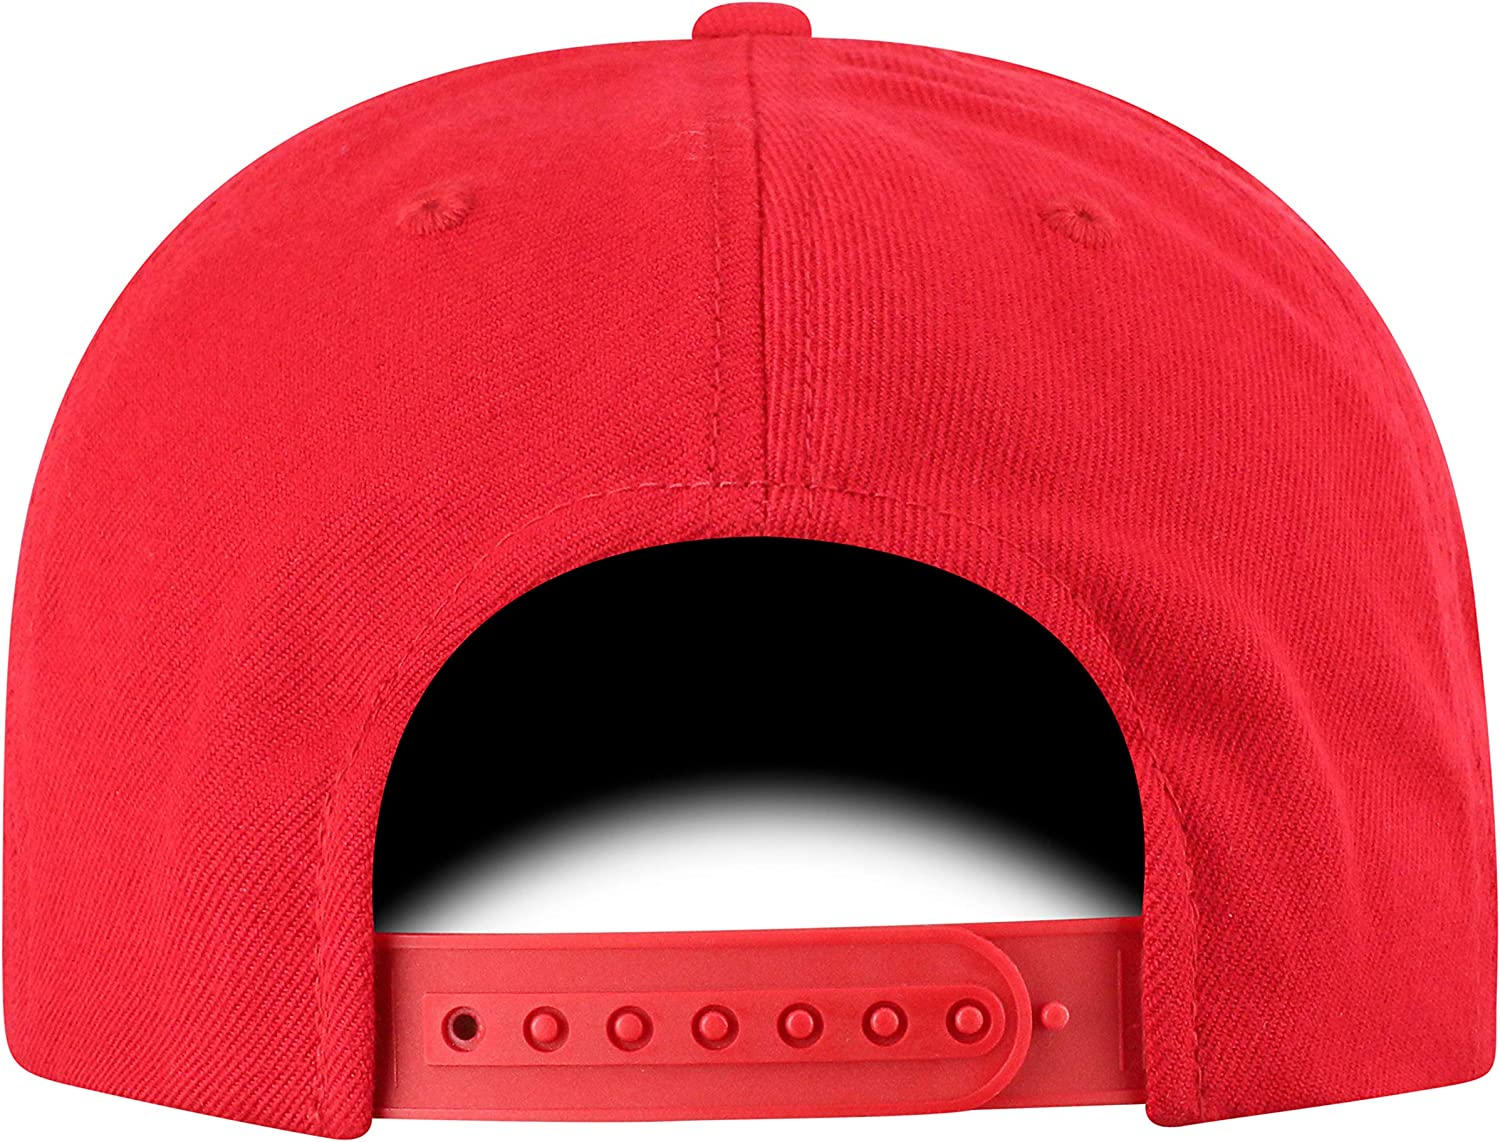 Ohio State Buckeyes Red Top of the World Mens Flat Brim Fitted Hat Team Icon Adjustable